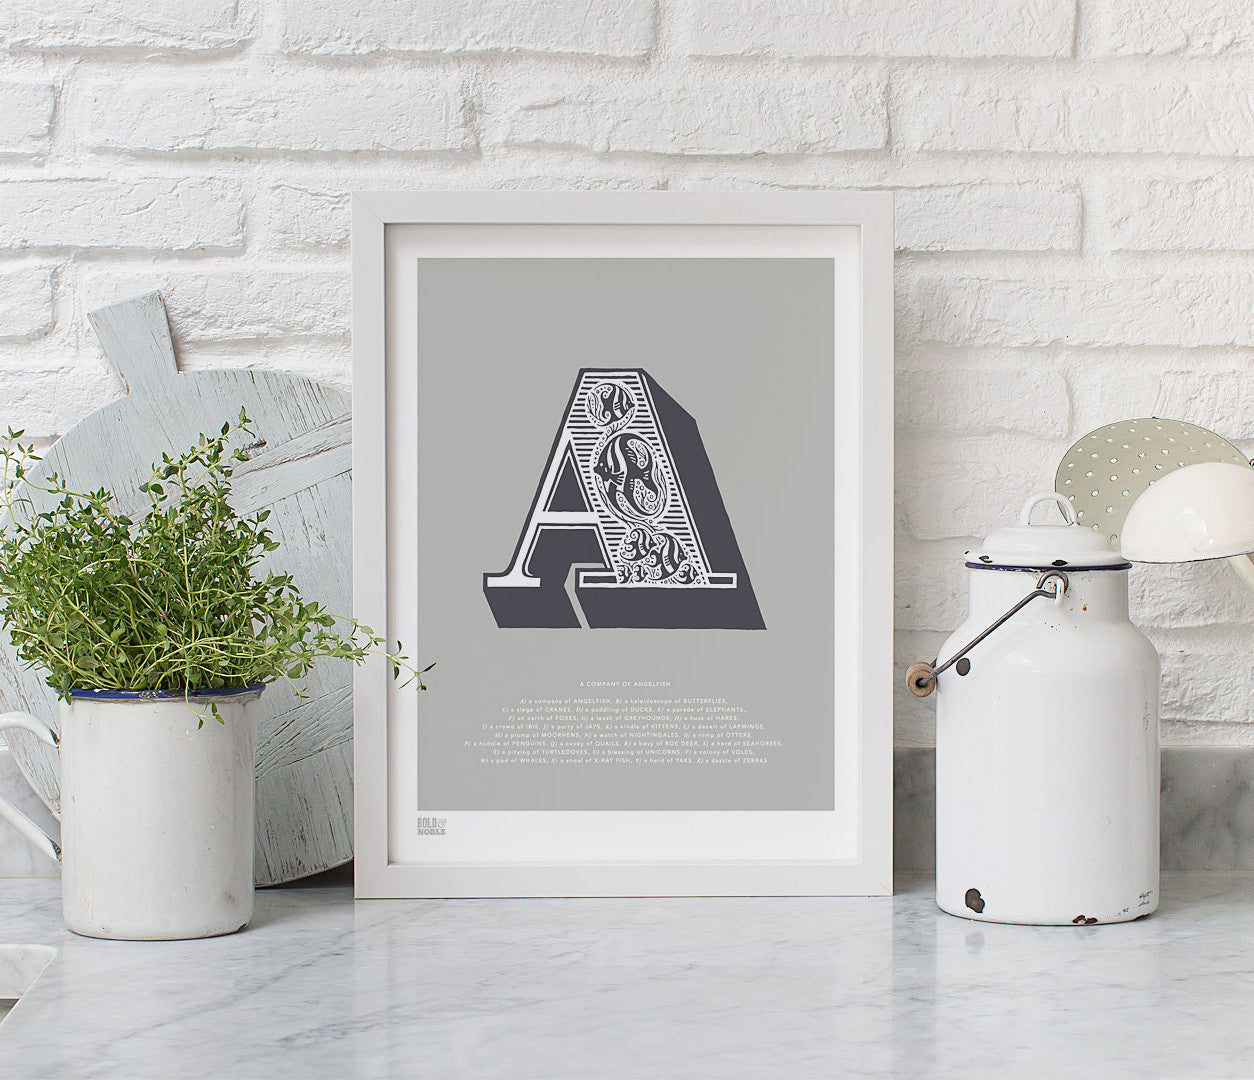 Pictures and Wall Art, Screen Printed Illustrated Letter A design in putty grey